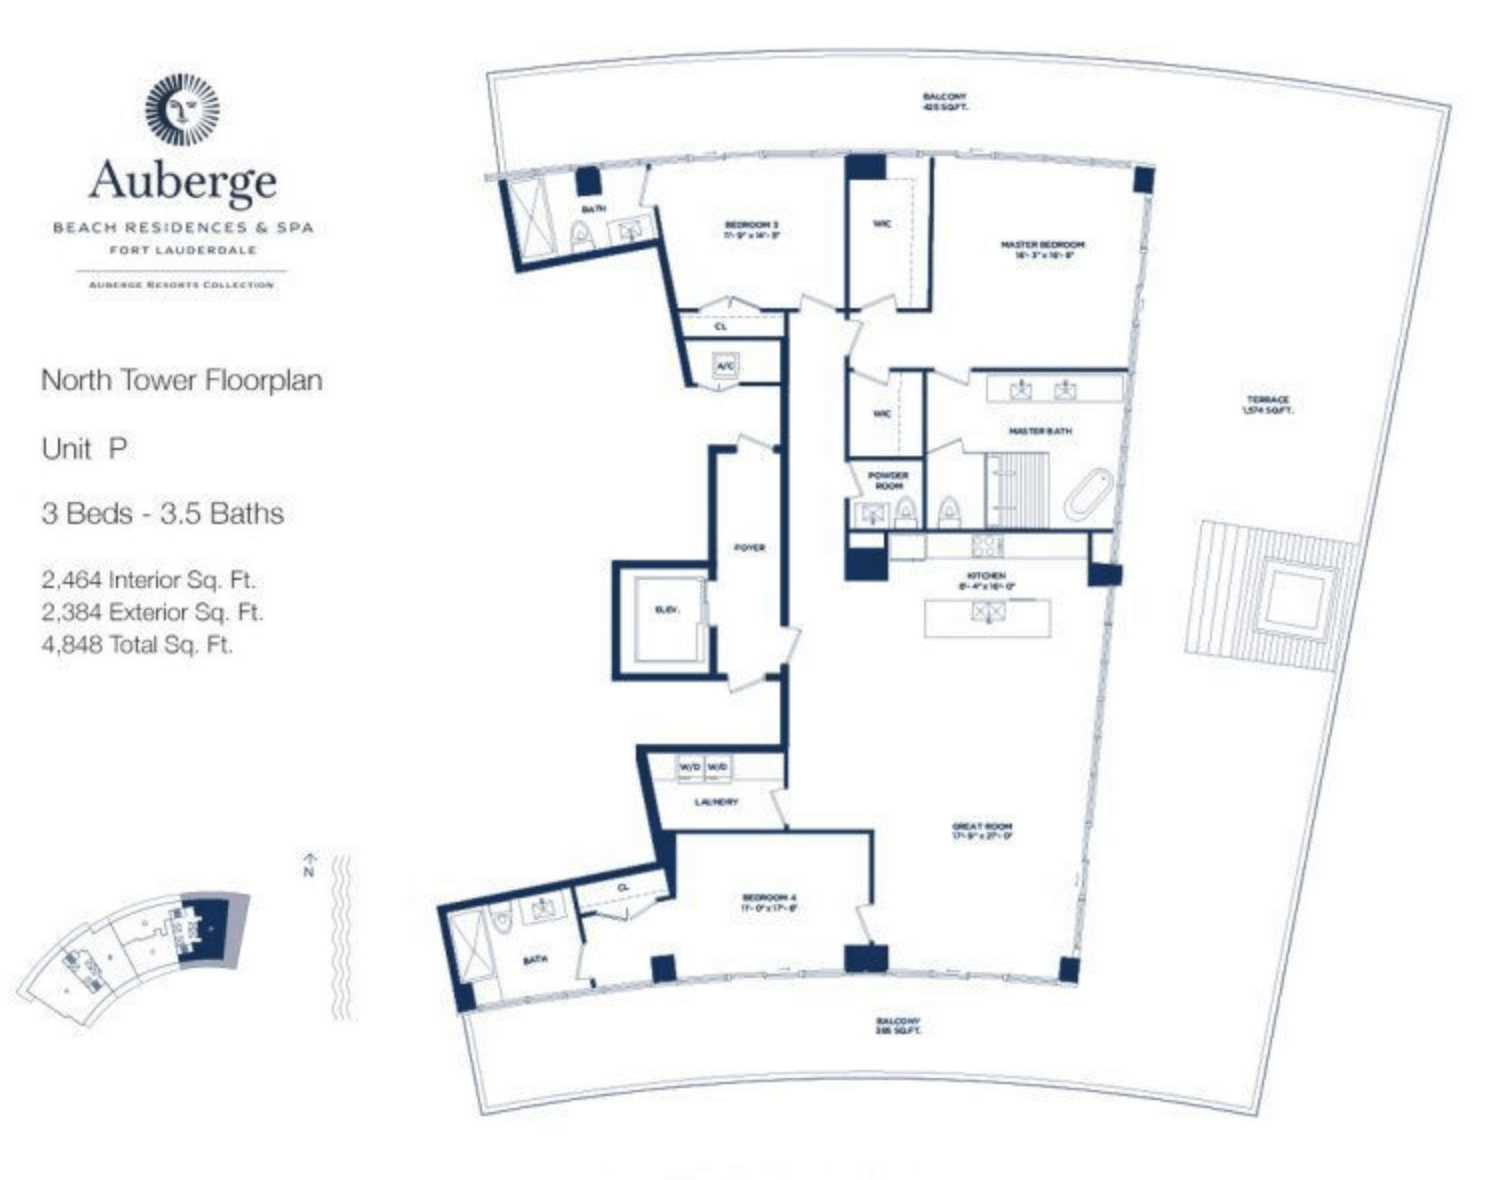 Auberge Beach Residences North Tower P | 3 Beds - 3.5 bathsAuberge Beach Residences North Tower P | 3 Beds - 3.5 baths